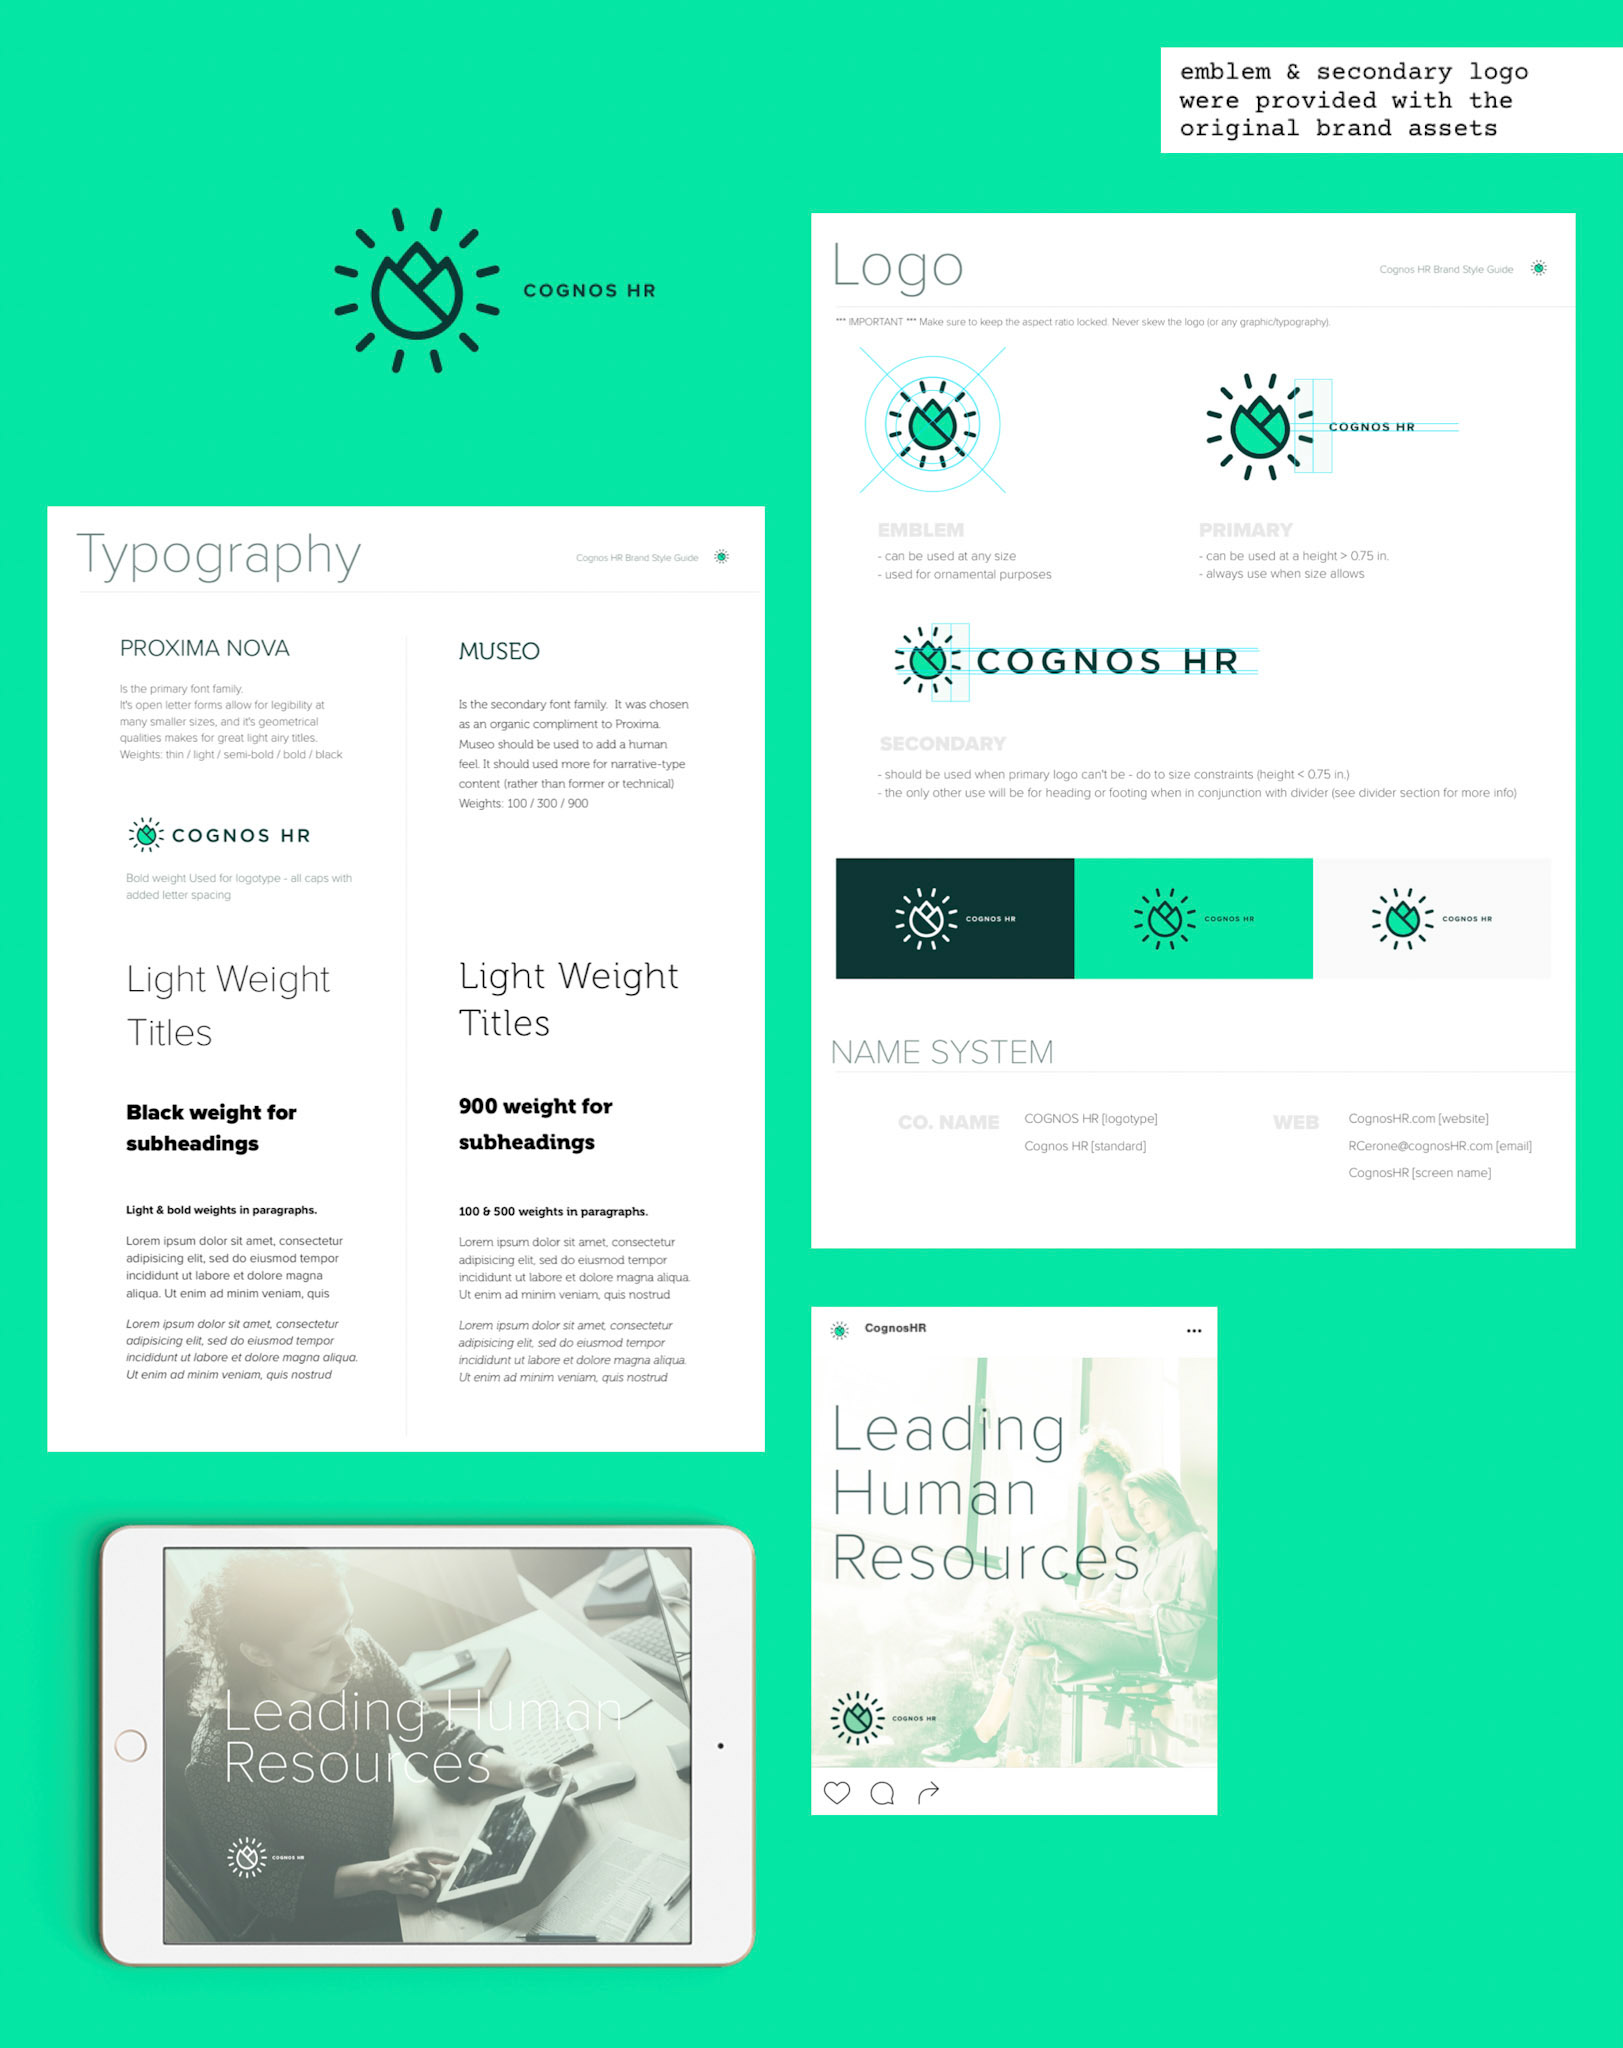 This shows the brand's typography, logo forms, colors, and examples of using image with text.